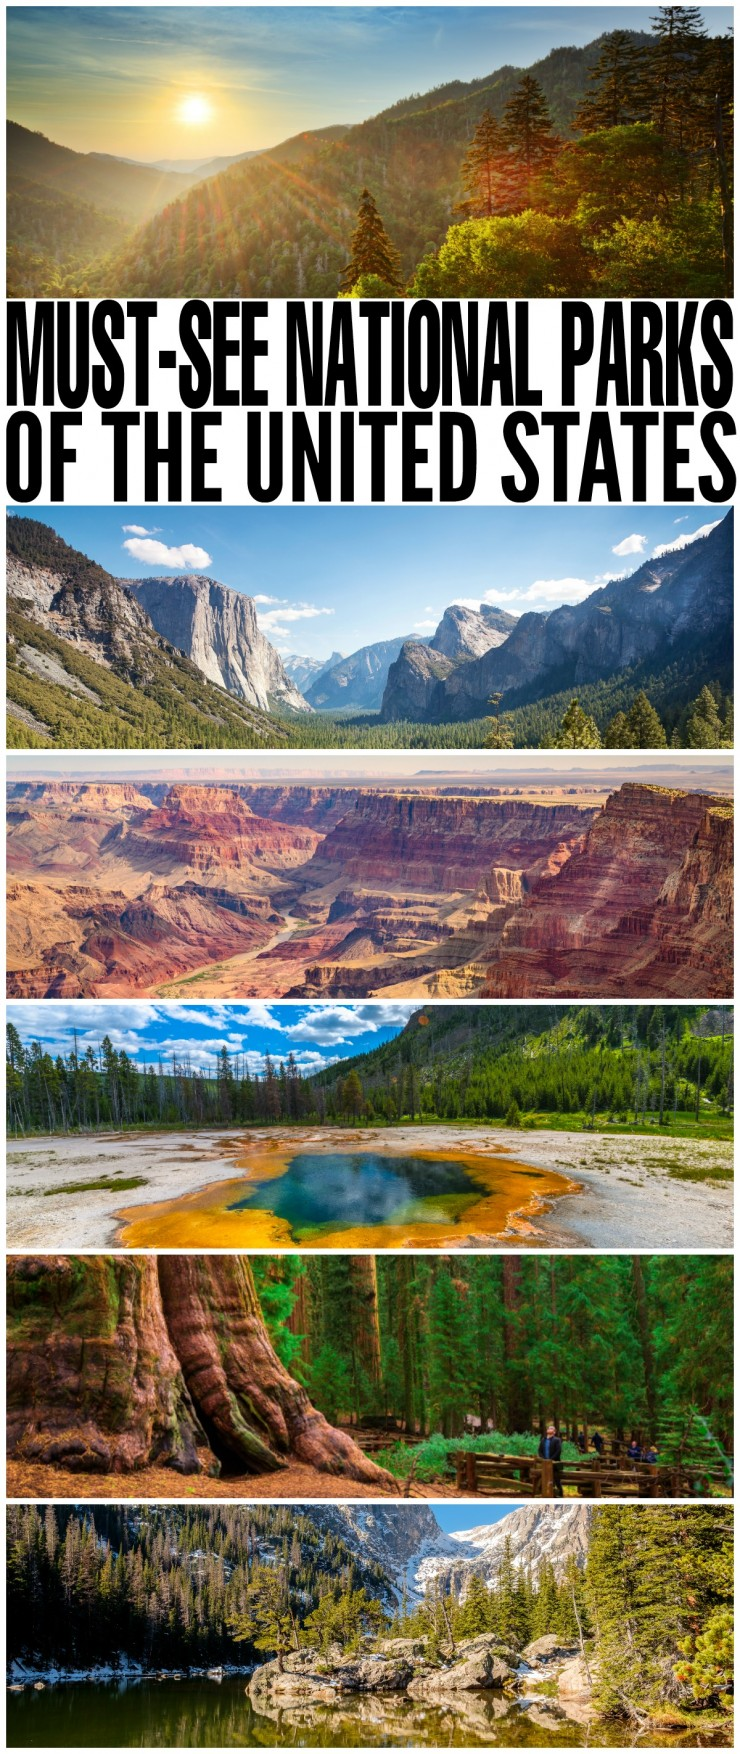 The National Parks in the United States feature some of the most inspiring views on the plant. Whether you are looking to discover deep valleys, tall mountains or giant trees, some the incredible United States National Parks will have exactly what you're looking for.